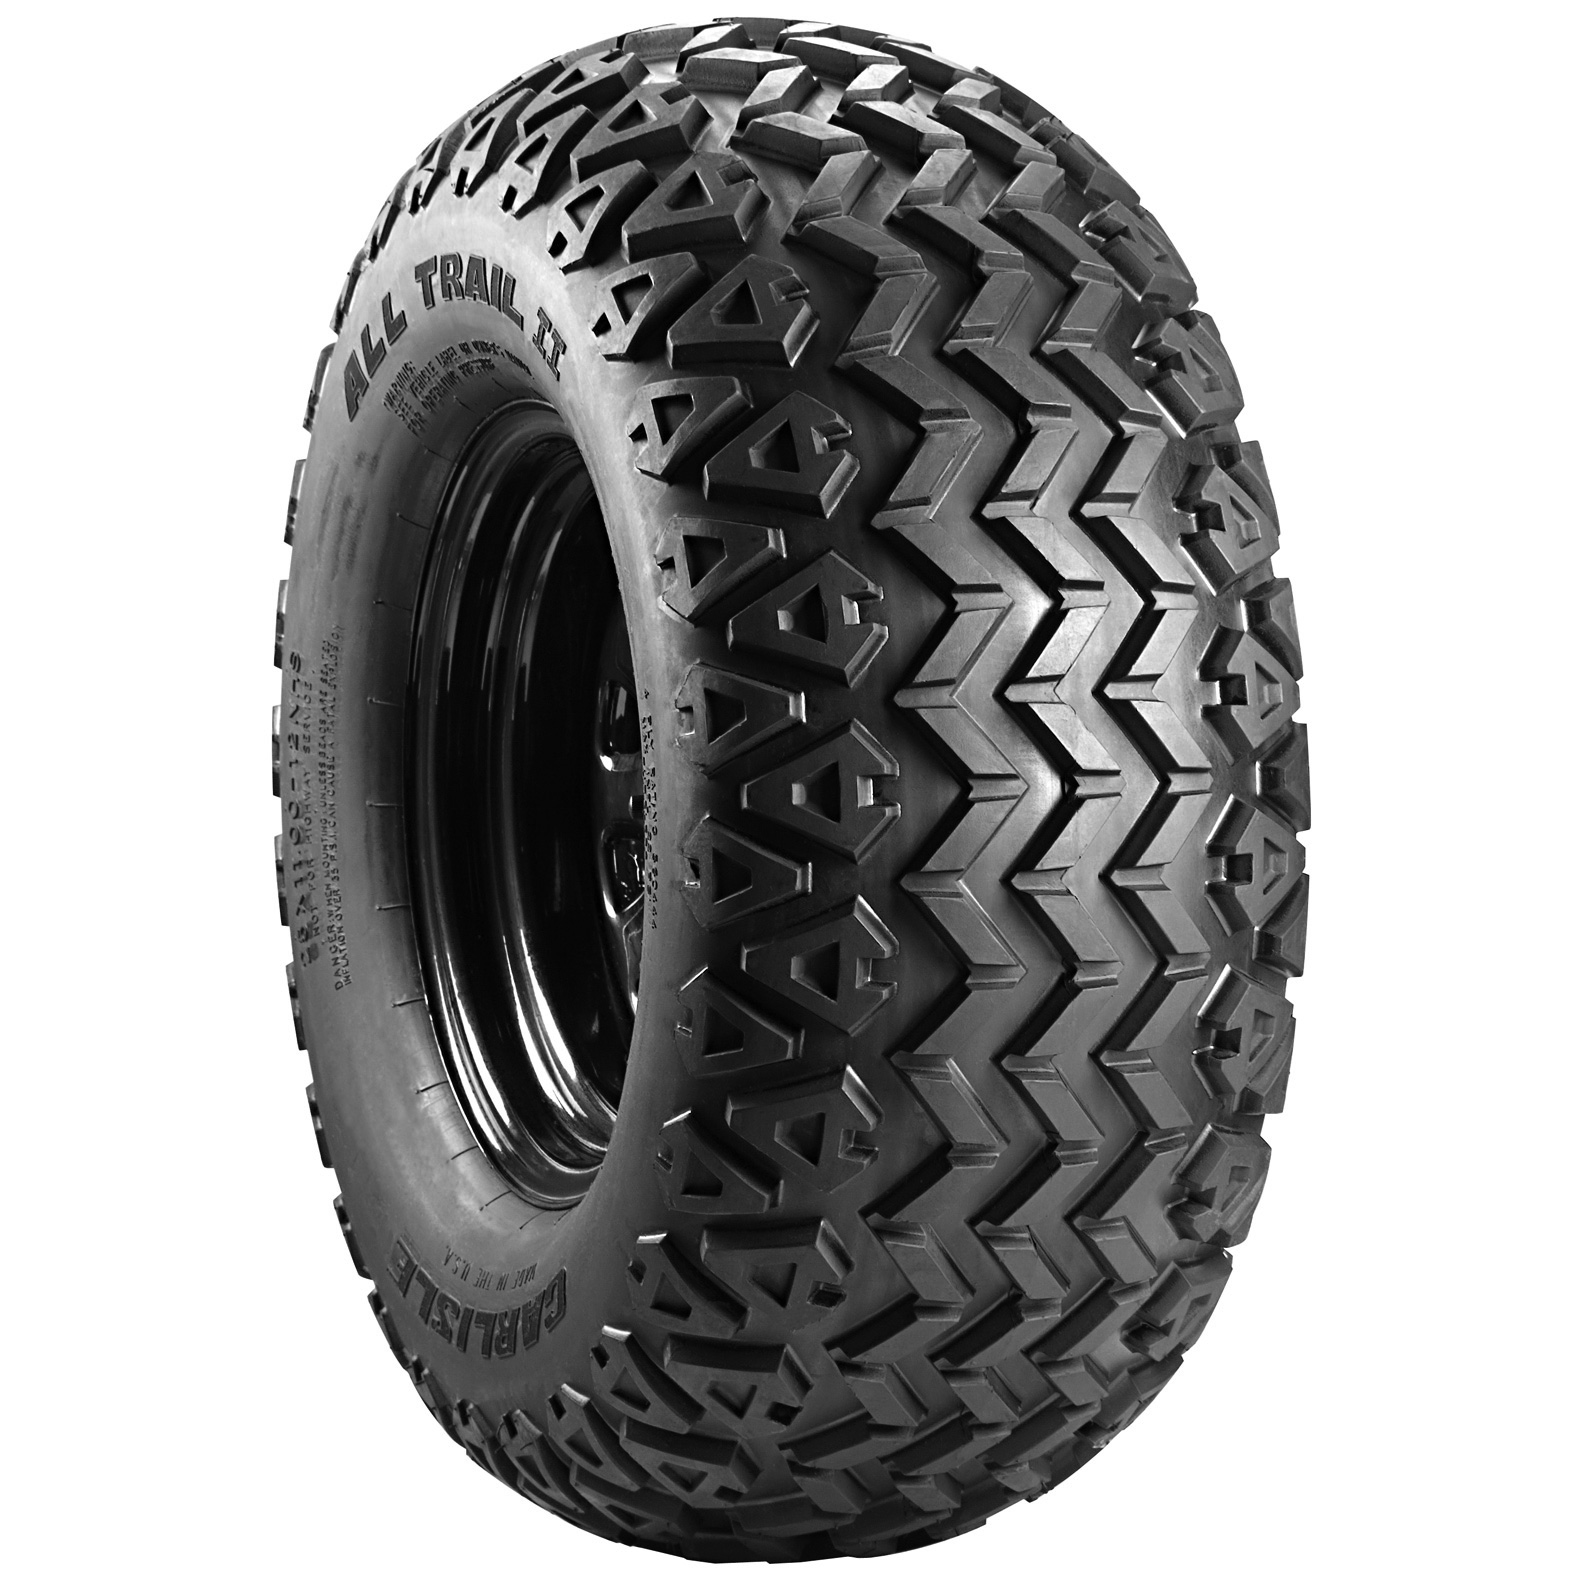 Carlisle All Trail II ATV Tire - Angle